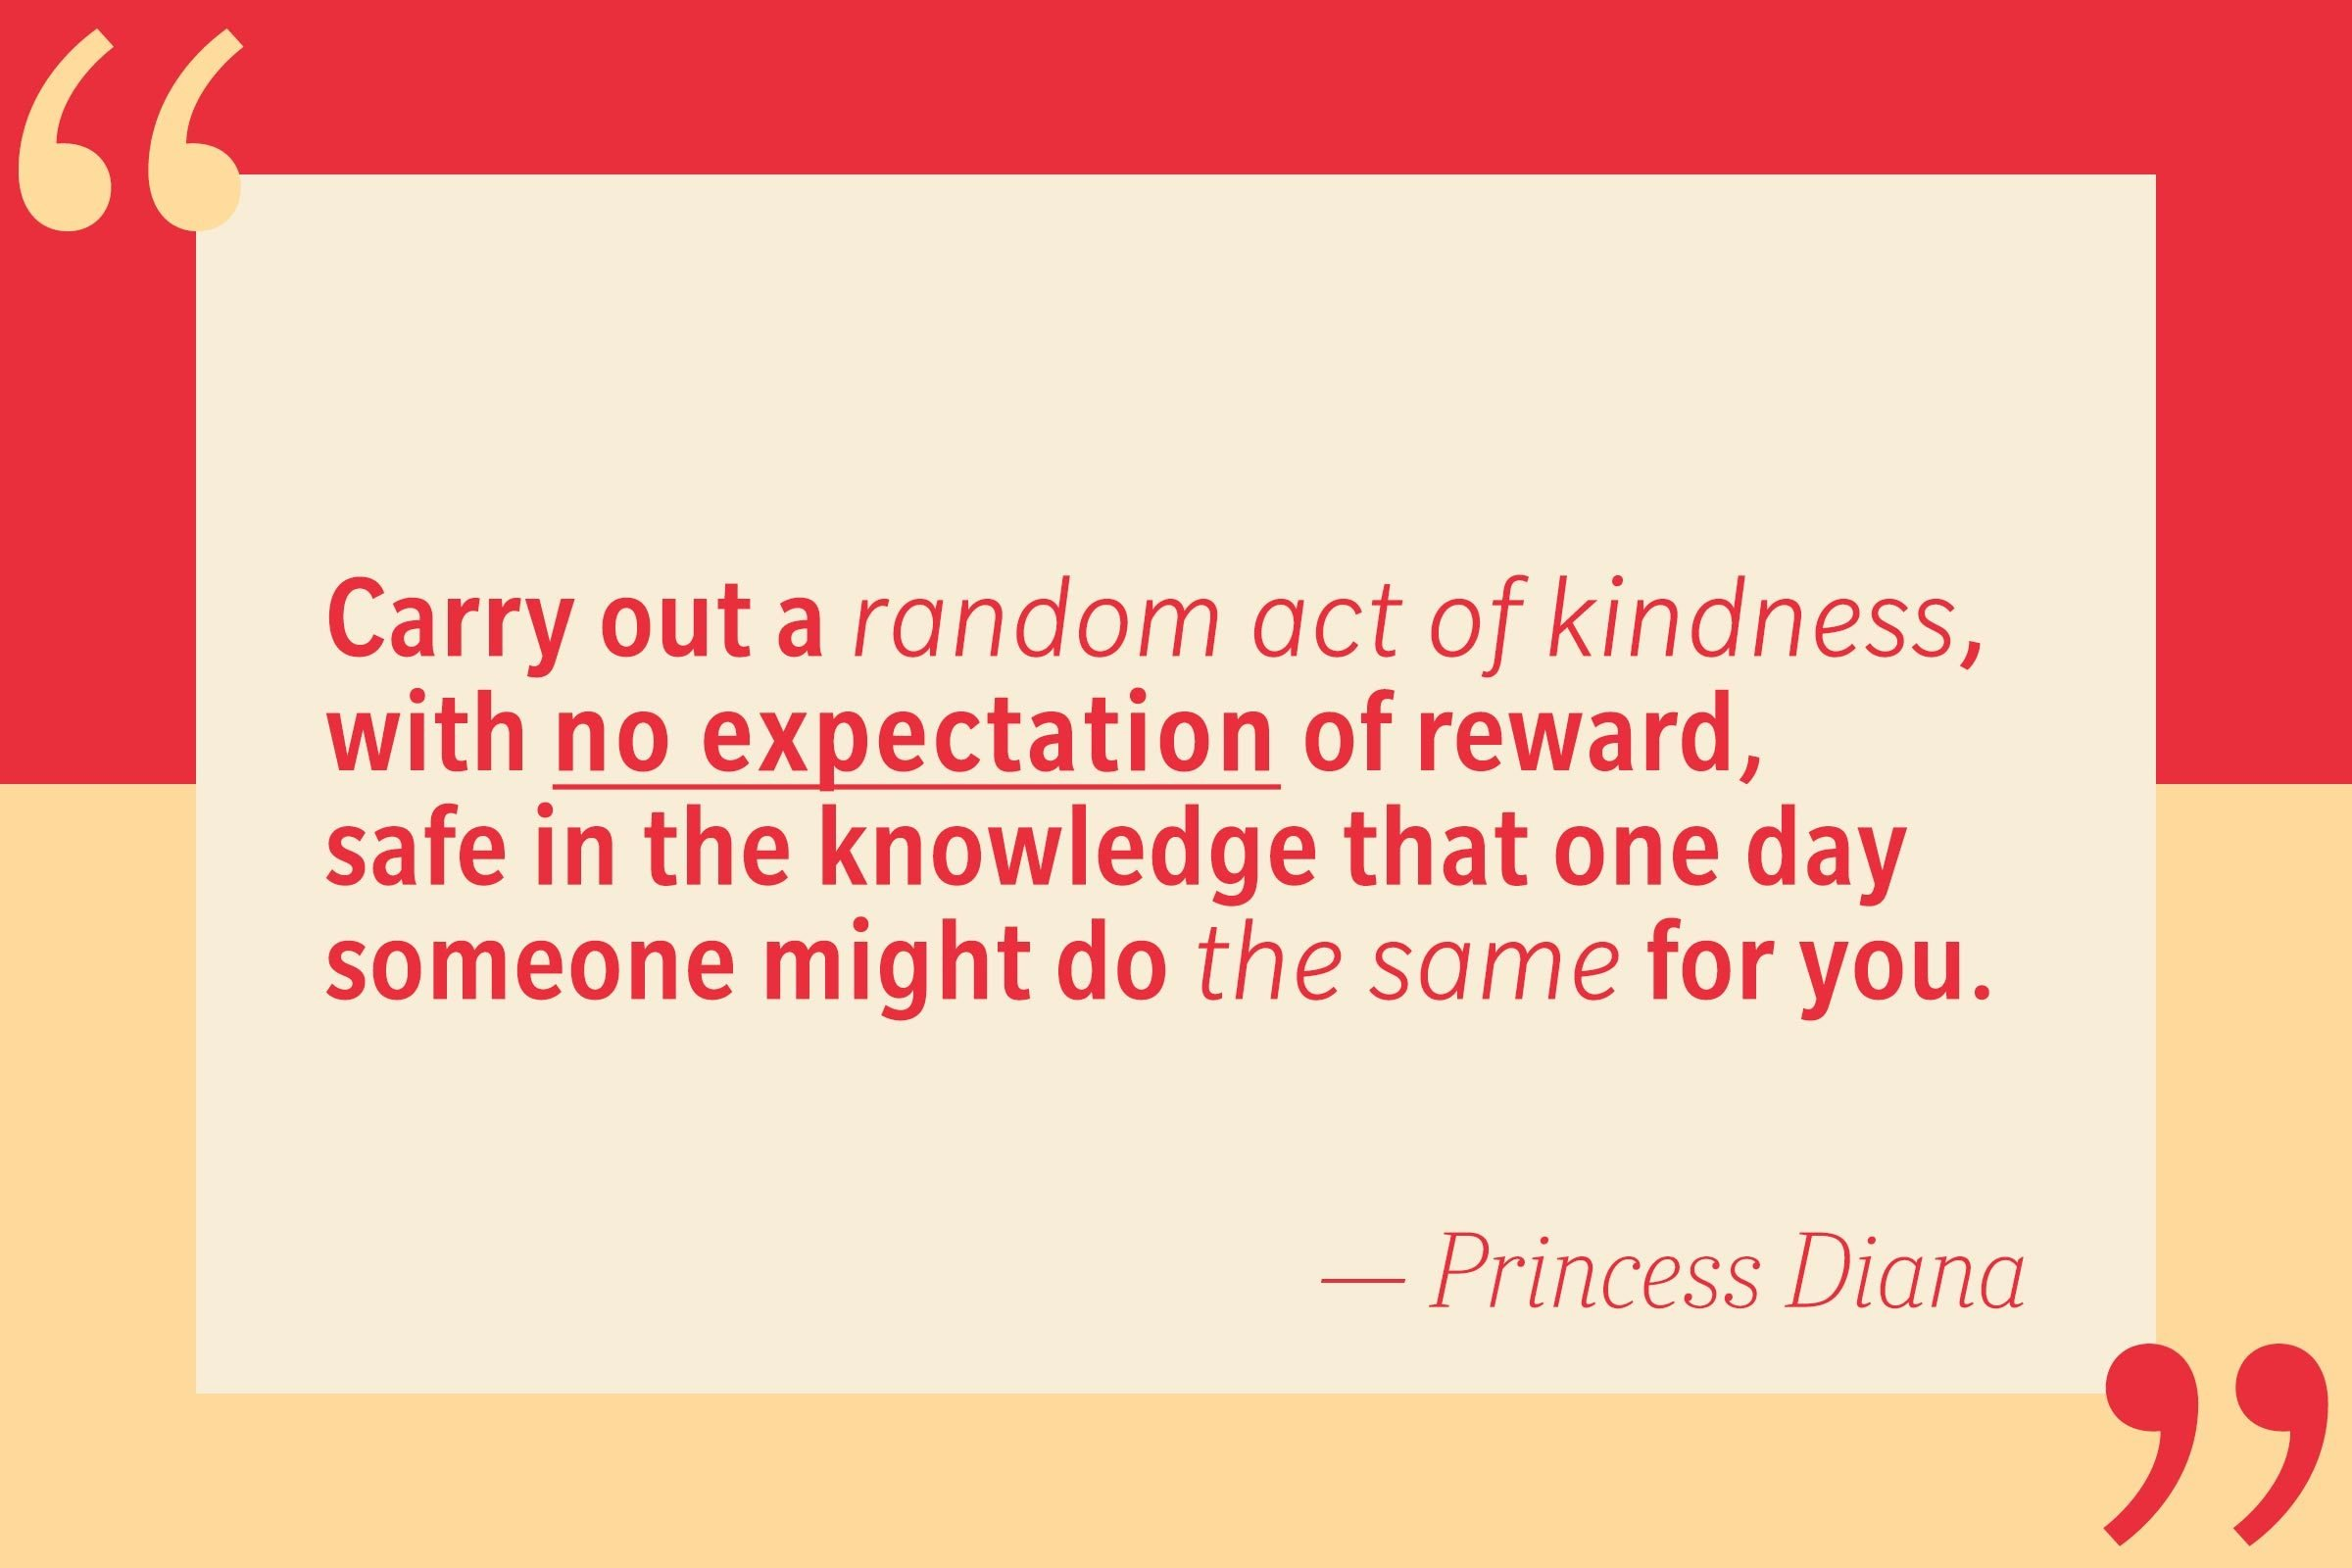 Carry out a random act of kindness, with no expection of reward, safe in the knowledge that one day someone might do the same for you. — Princess Diana